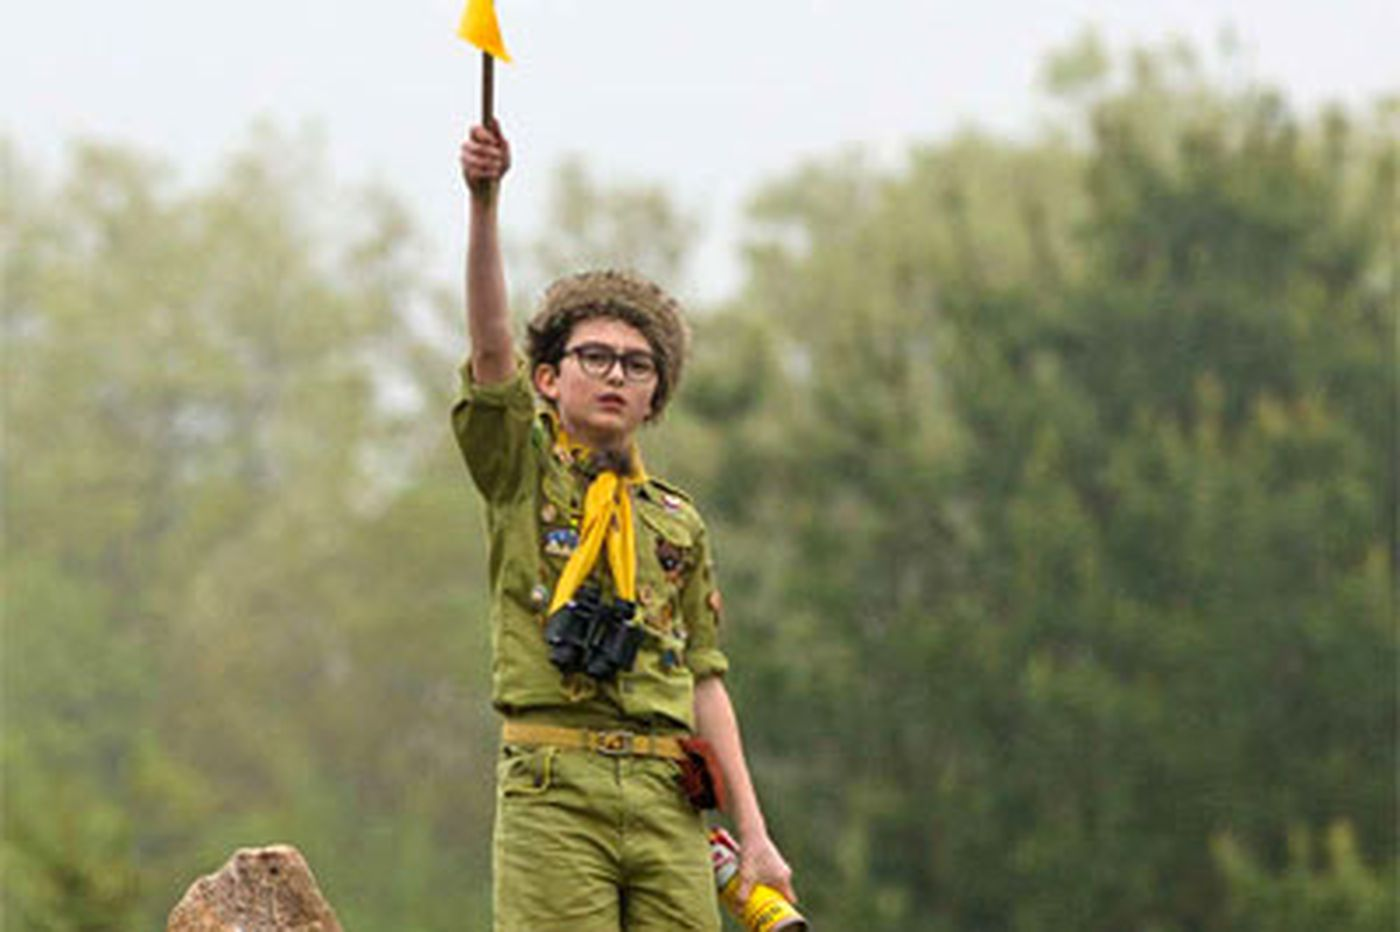 Wes Anderson's 'Moonrise Kingdom' has youngsters in love, Bill Murray, Frances McDormand